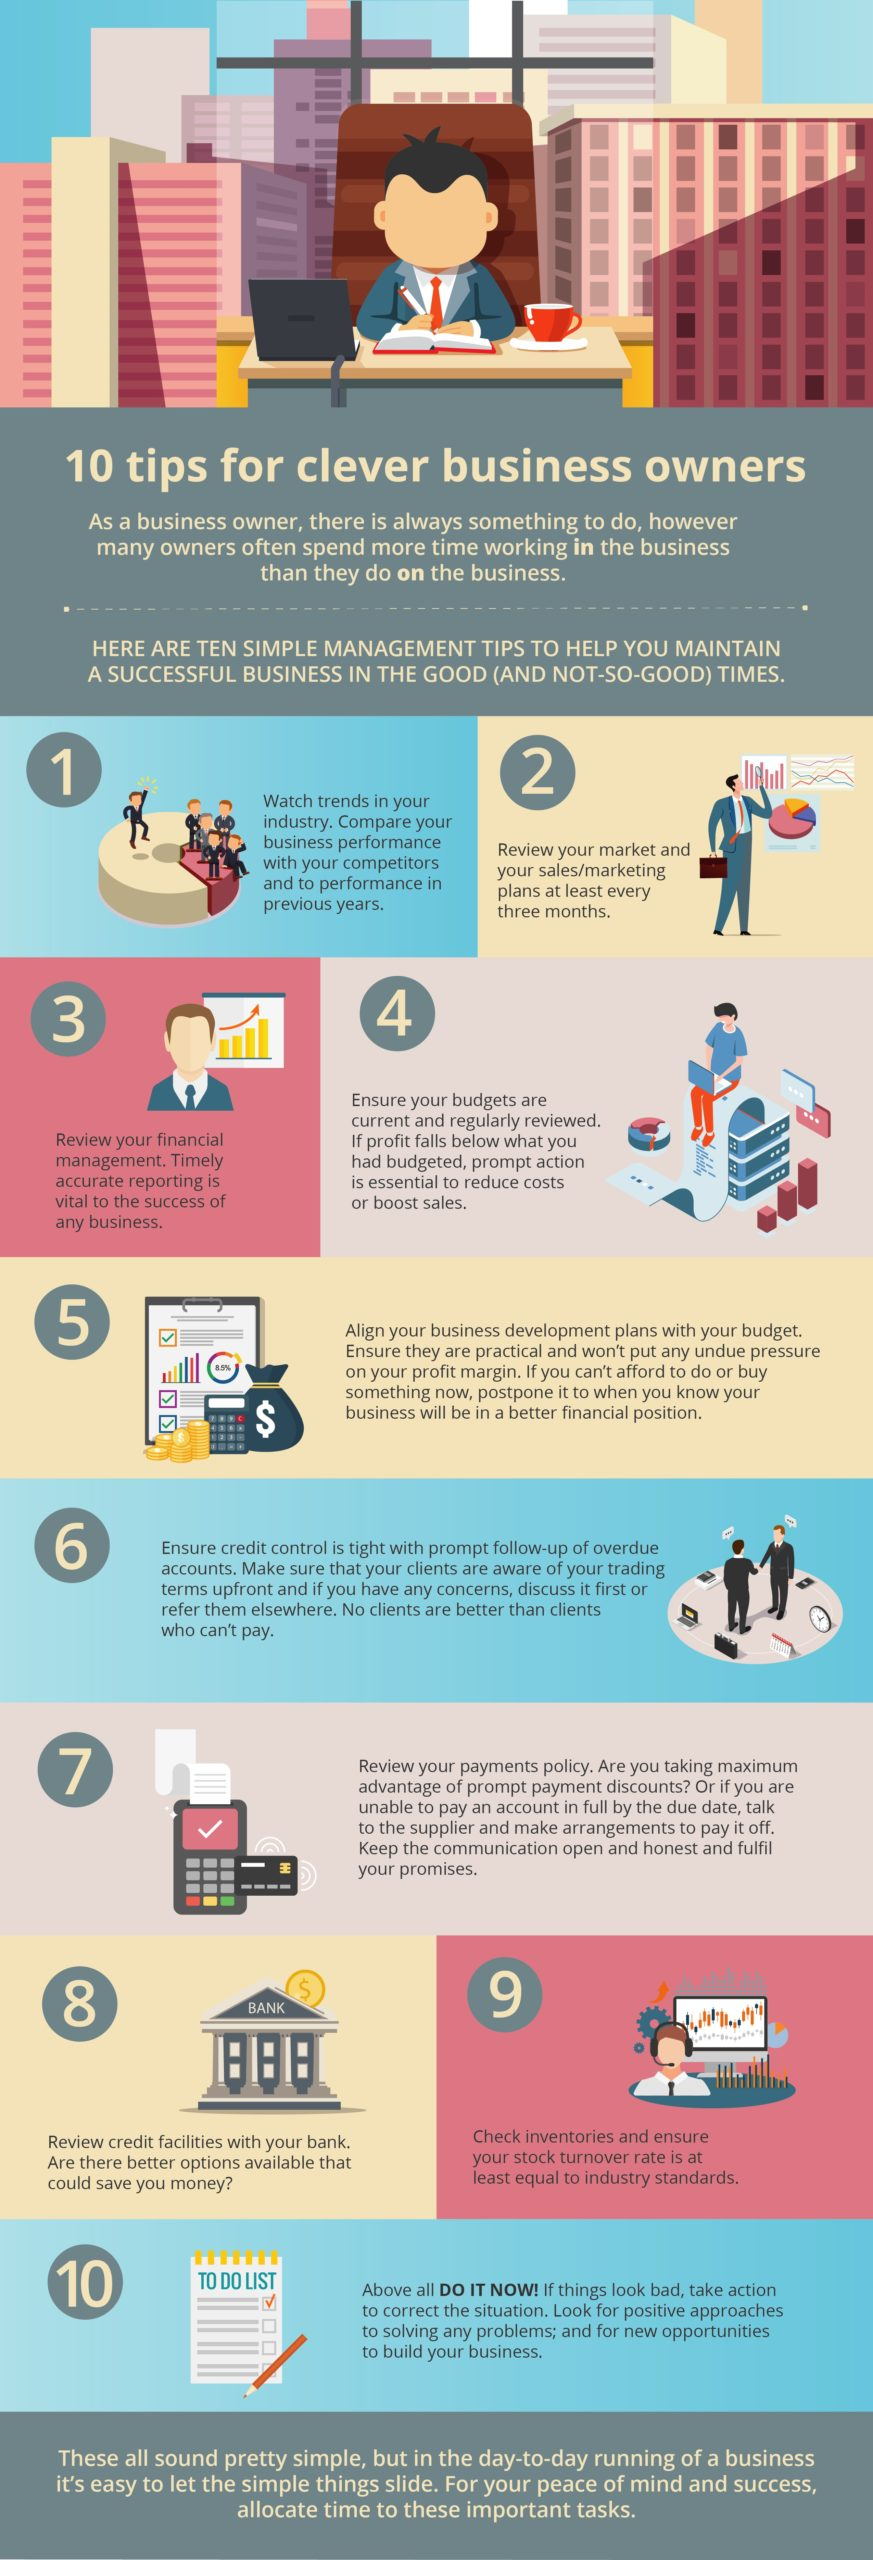 Ten tips for clever business owners